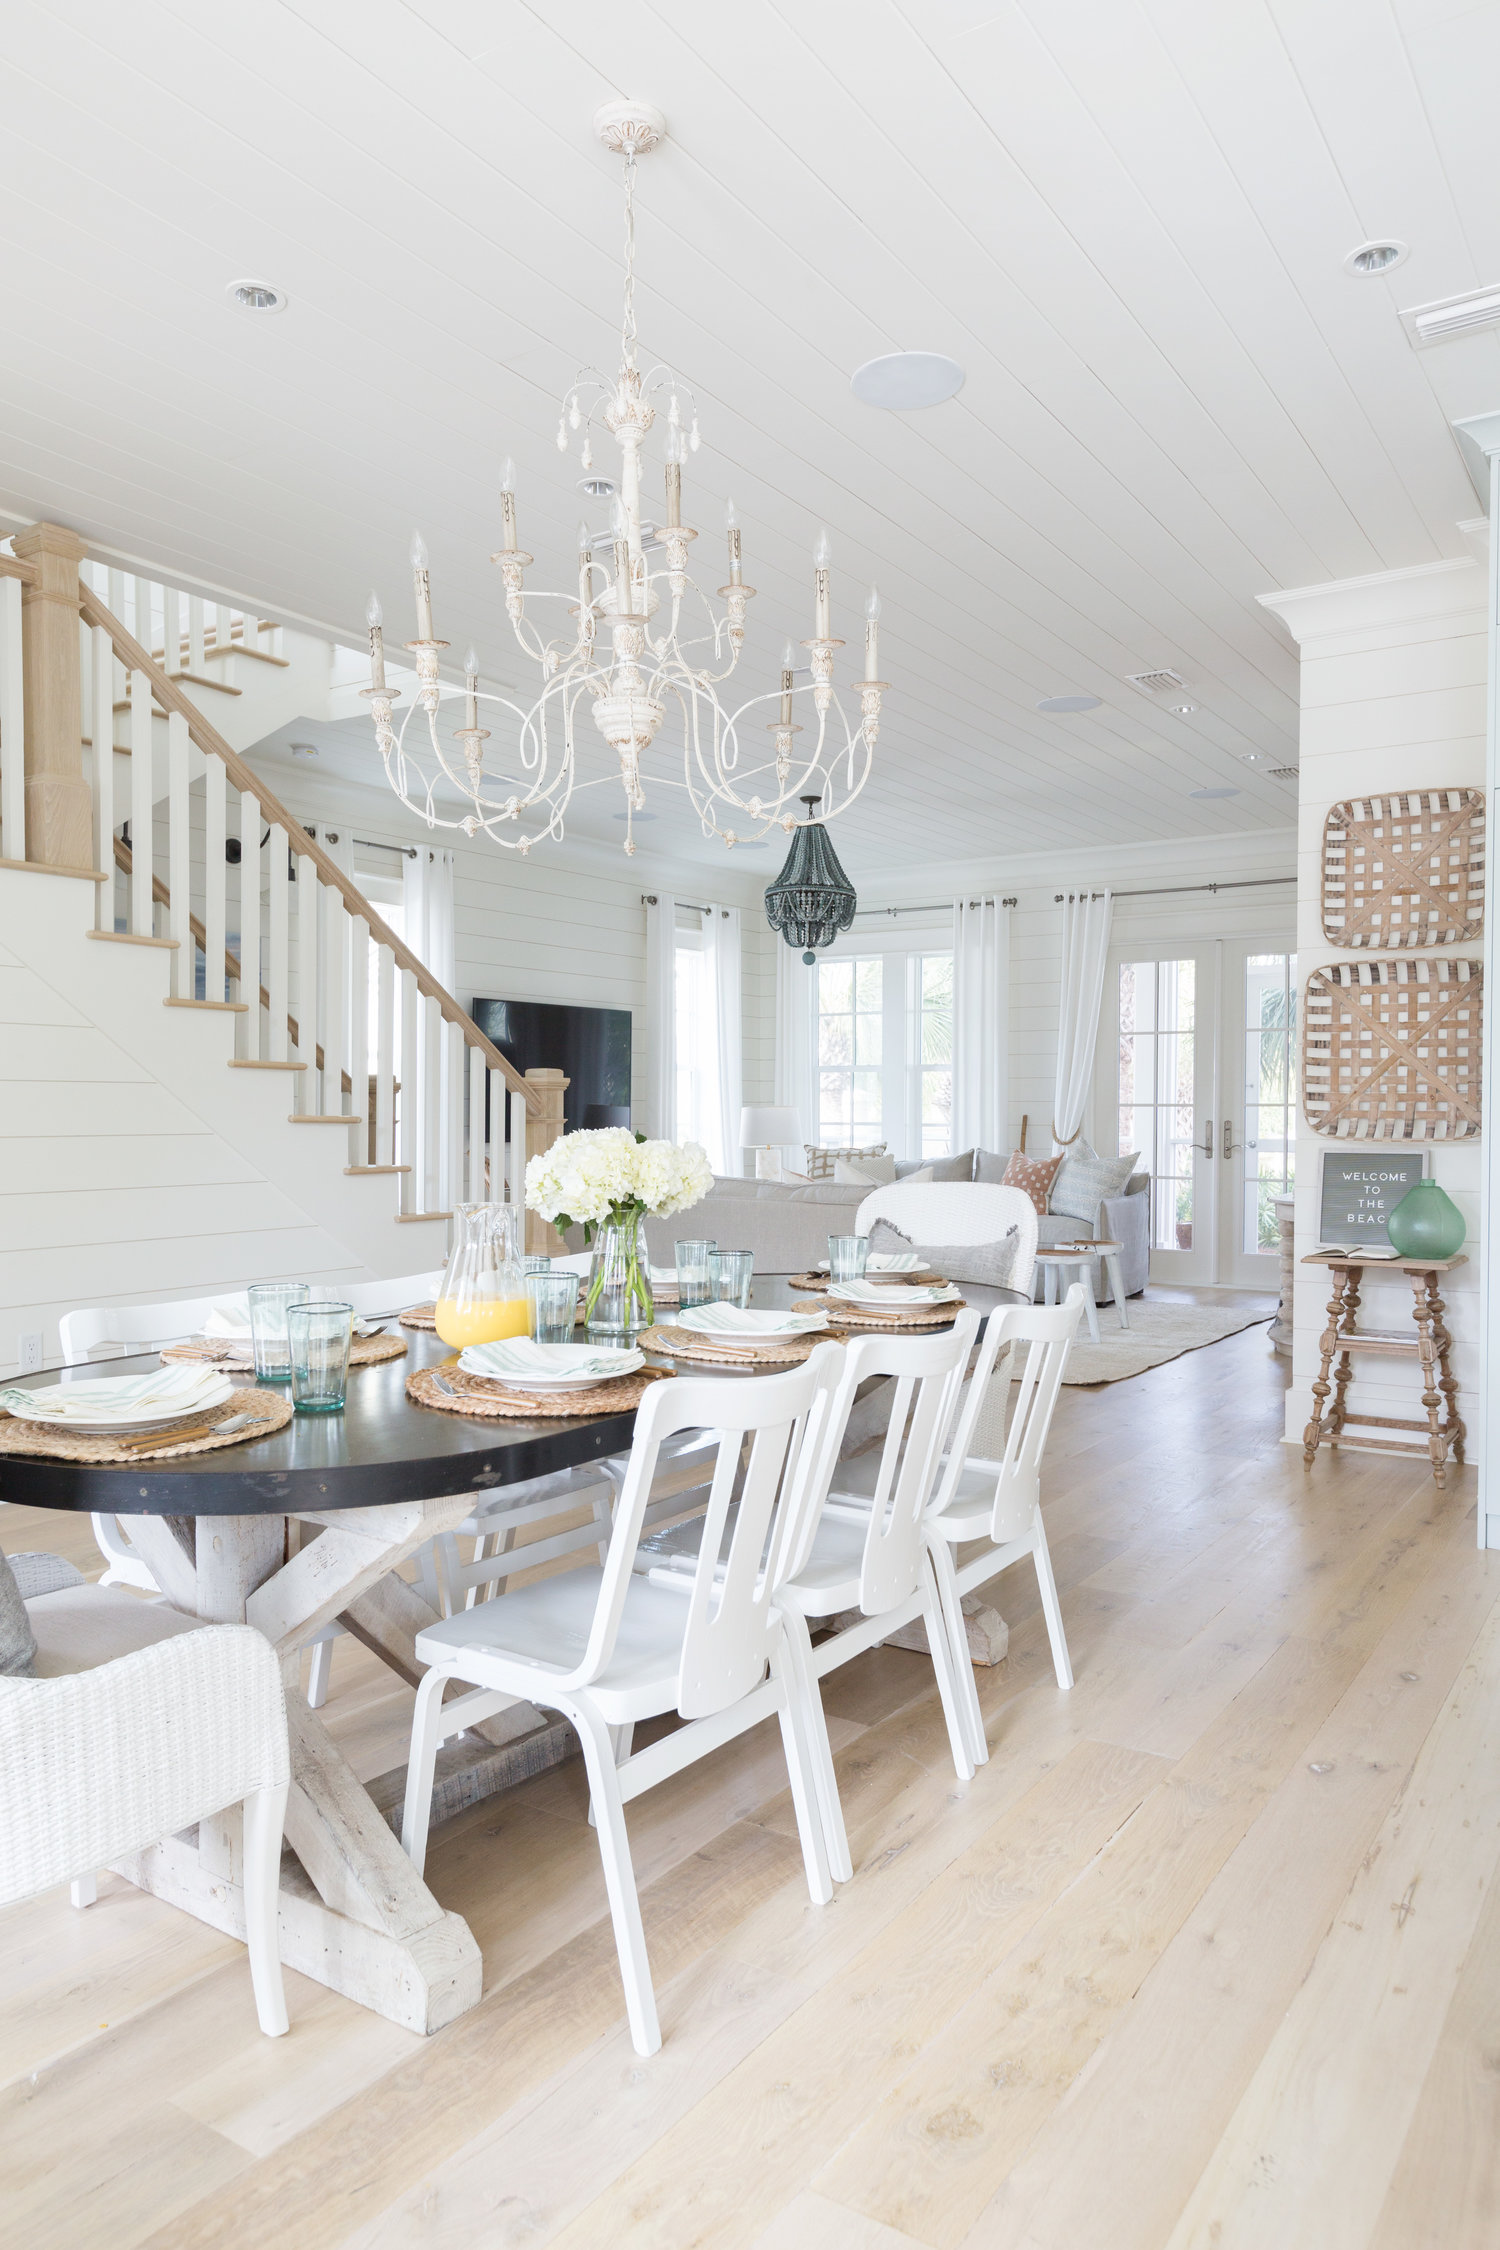 Eclectic Home Tour of the Sugar Palm House. Love the neutral home with lots of texture including shiplap walls and ceilings, eclectic furnishings and statement chandeliers. kellyelko.com #hometour #decorate #homedecor #kitchen #kitchentable #diningroom #diningroomdecor #chandelier